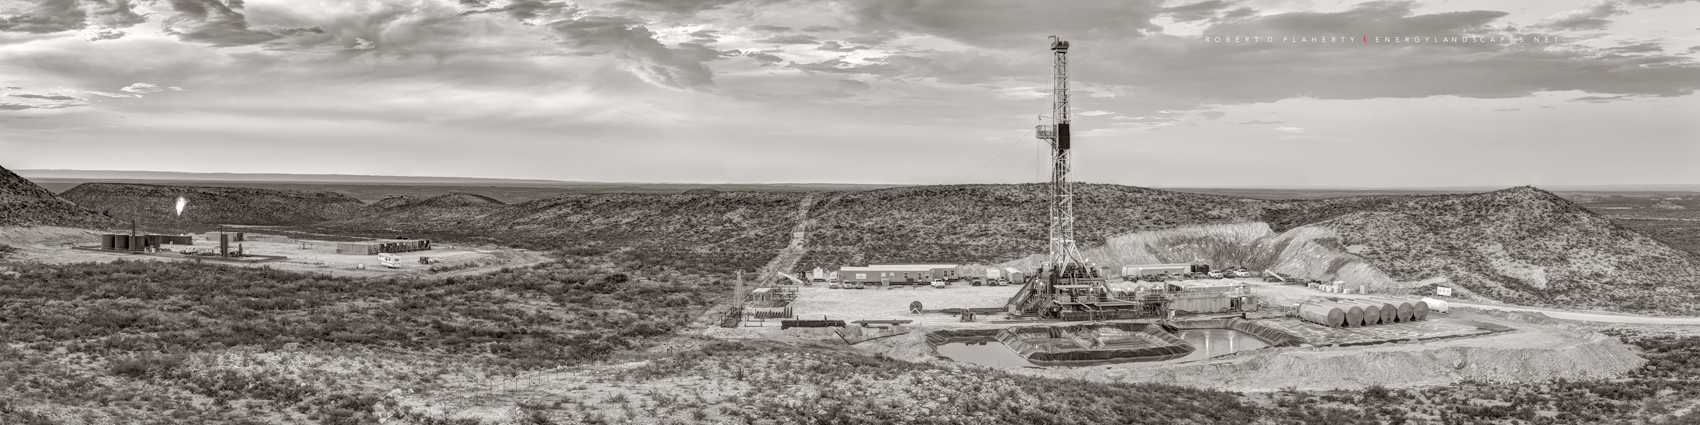 Permian Basin, Delaware Basin, West Texas, drilling rig, directional well, panorama, composite panorama, sepia, black & white, sepia toned black & white, fine art black & white photography, mural, photo